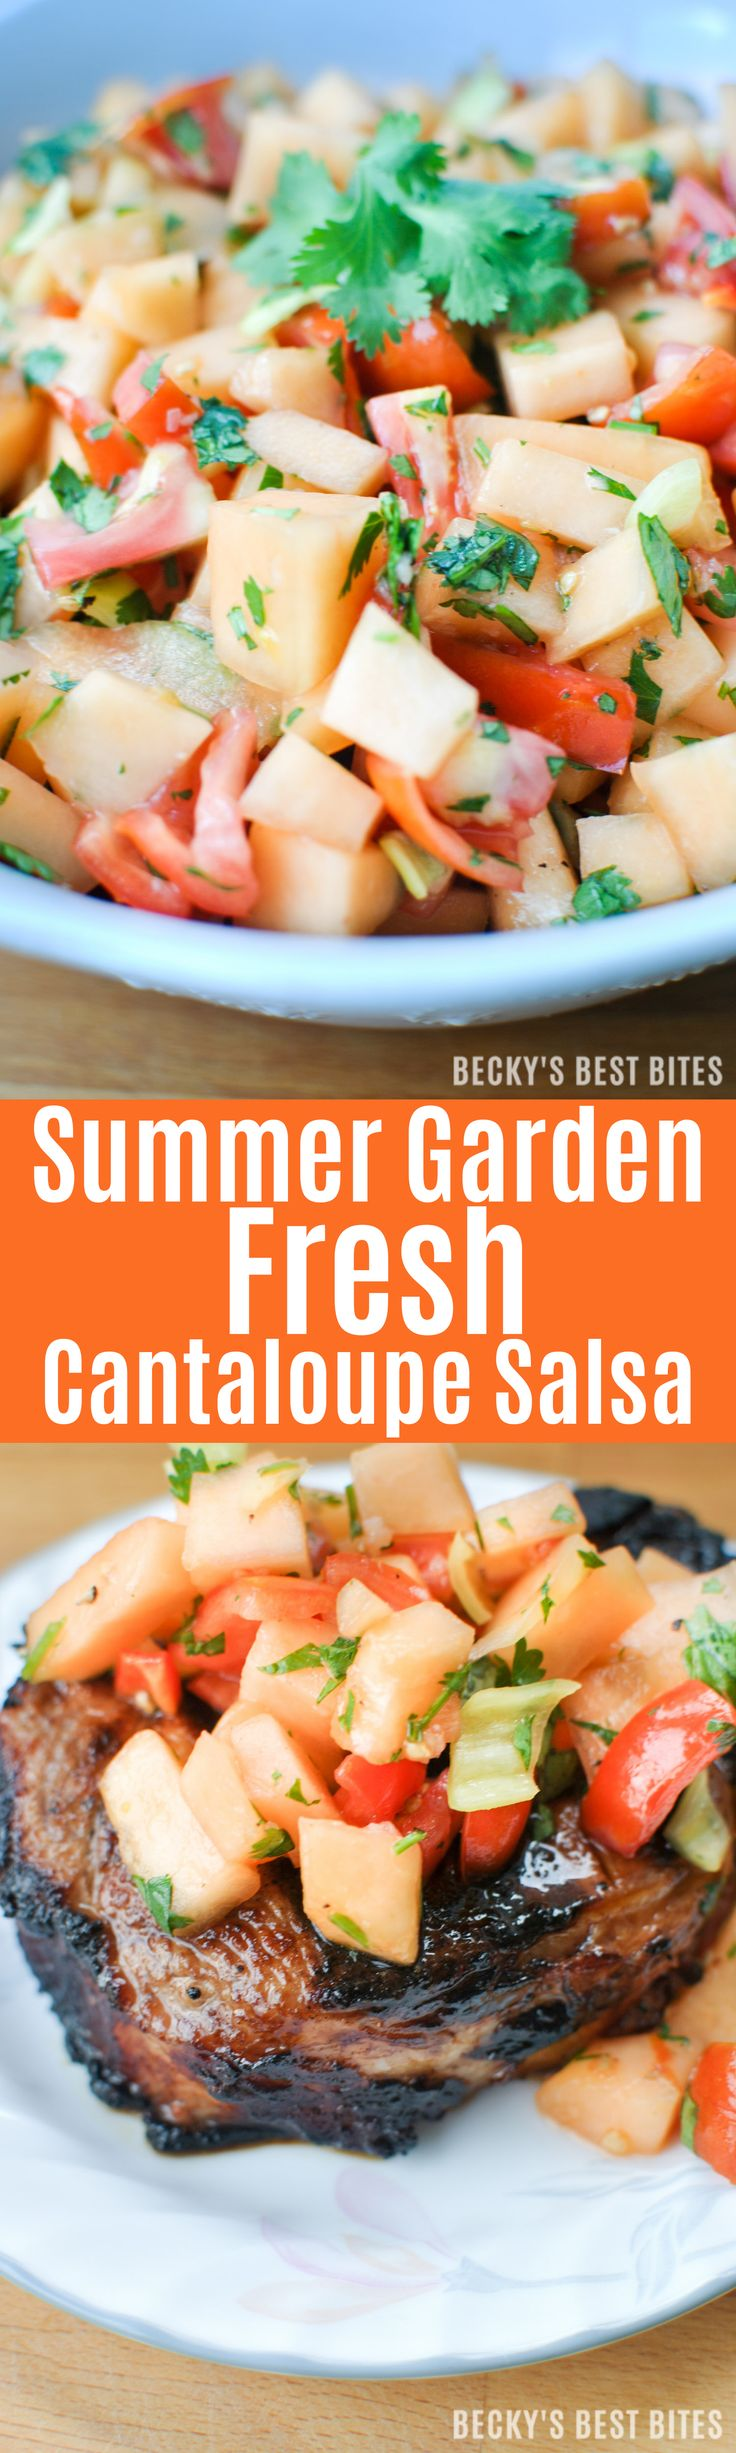 Summer Garden Fresh Cantaloupe Salsa is a healthy & unique version of the mexican appetizer dip. Sweet and savory flavors from cantaloupe, tomatoes, peppers, lime, garlic and cilantro come together for a winning combo!   beckysbestbites.com